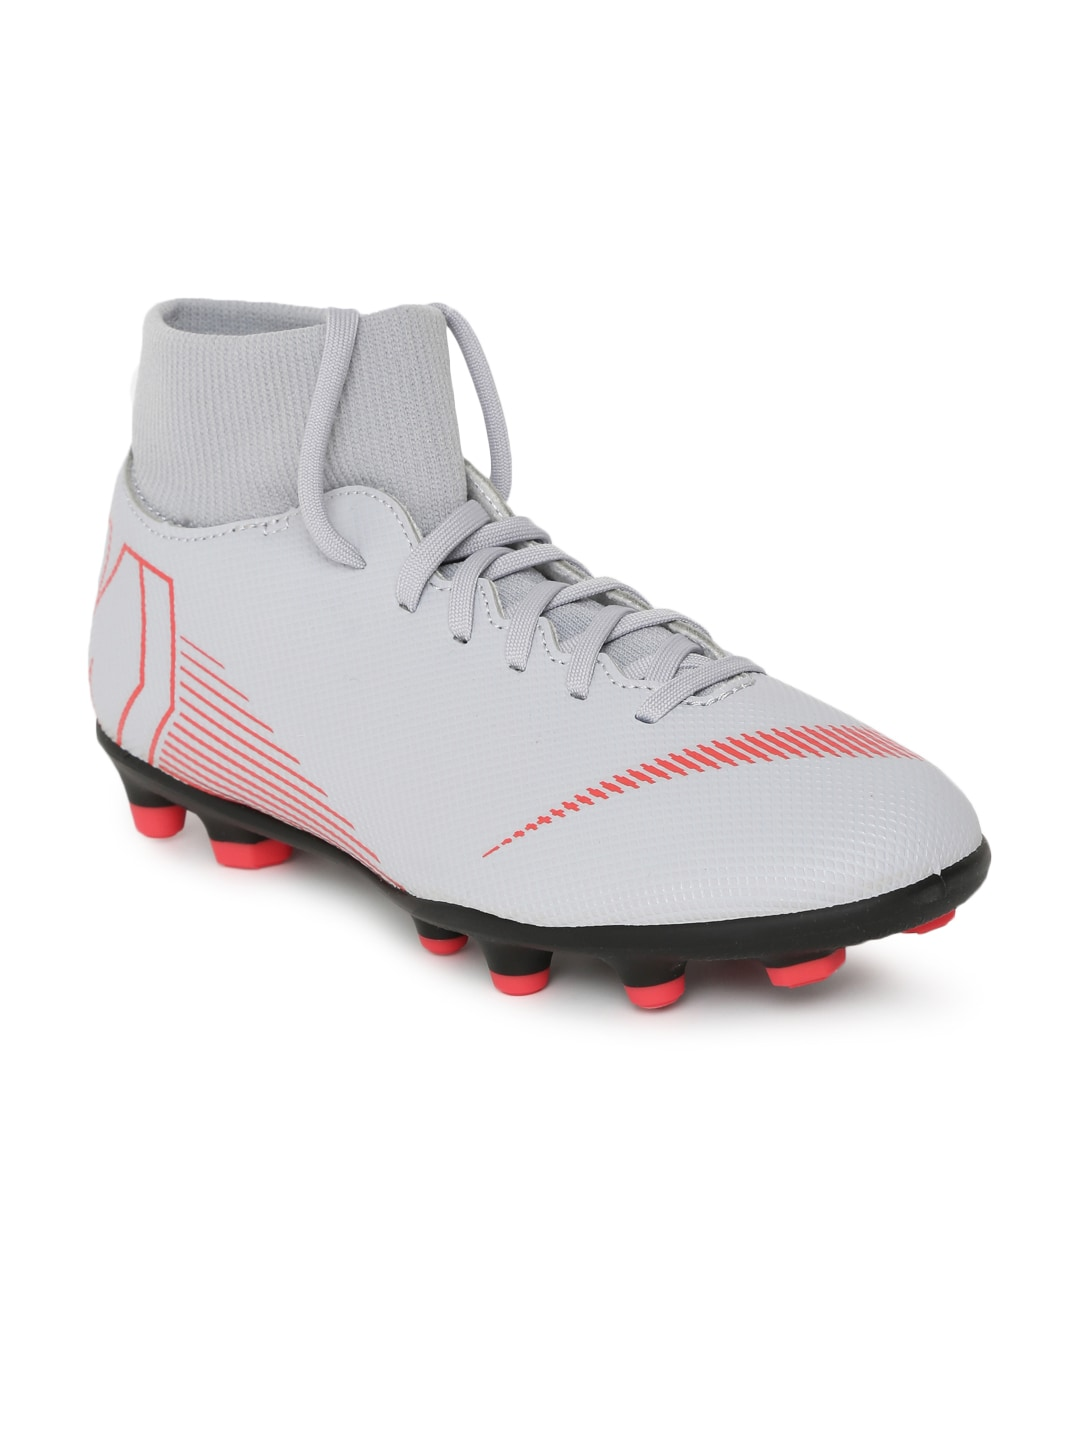 516999701ac3 Football Shoes - Buy Football Studs Online for Men   Women in India